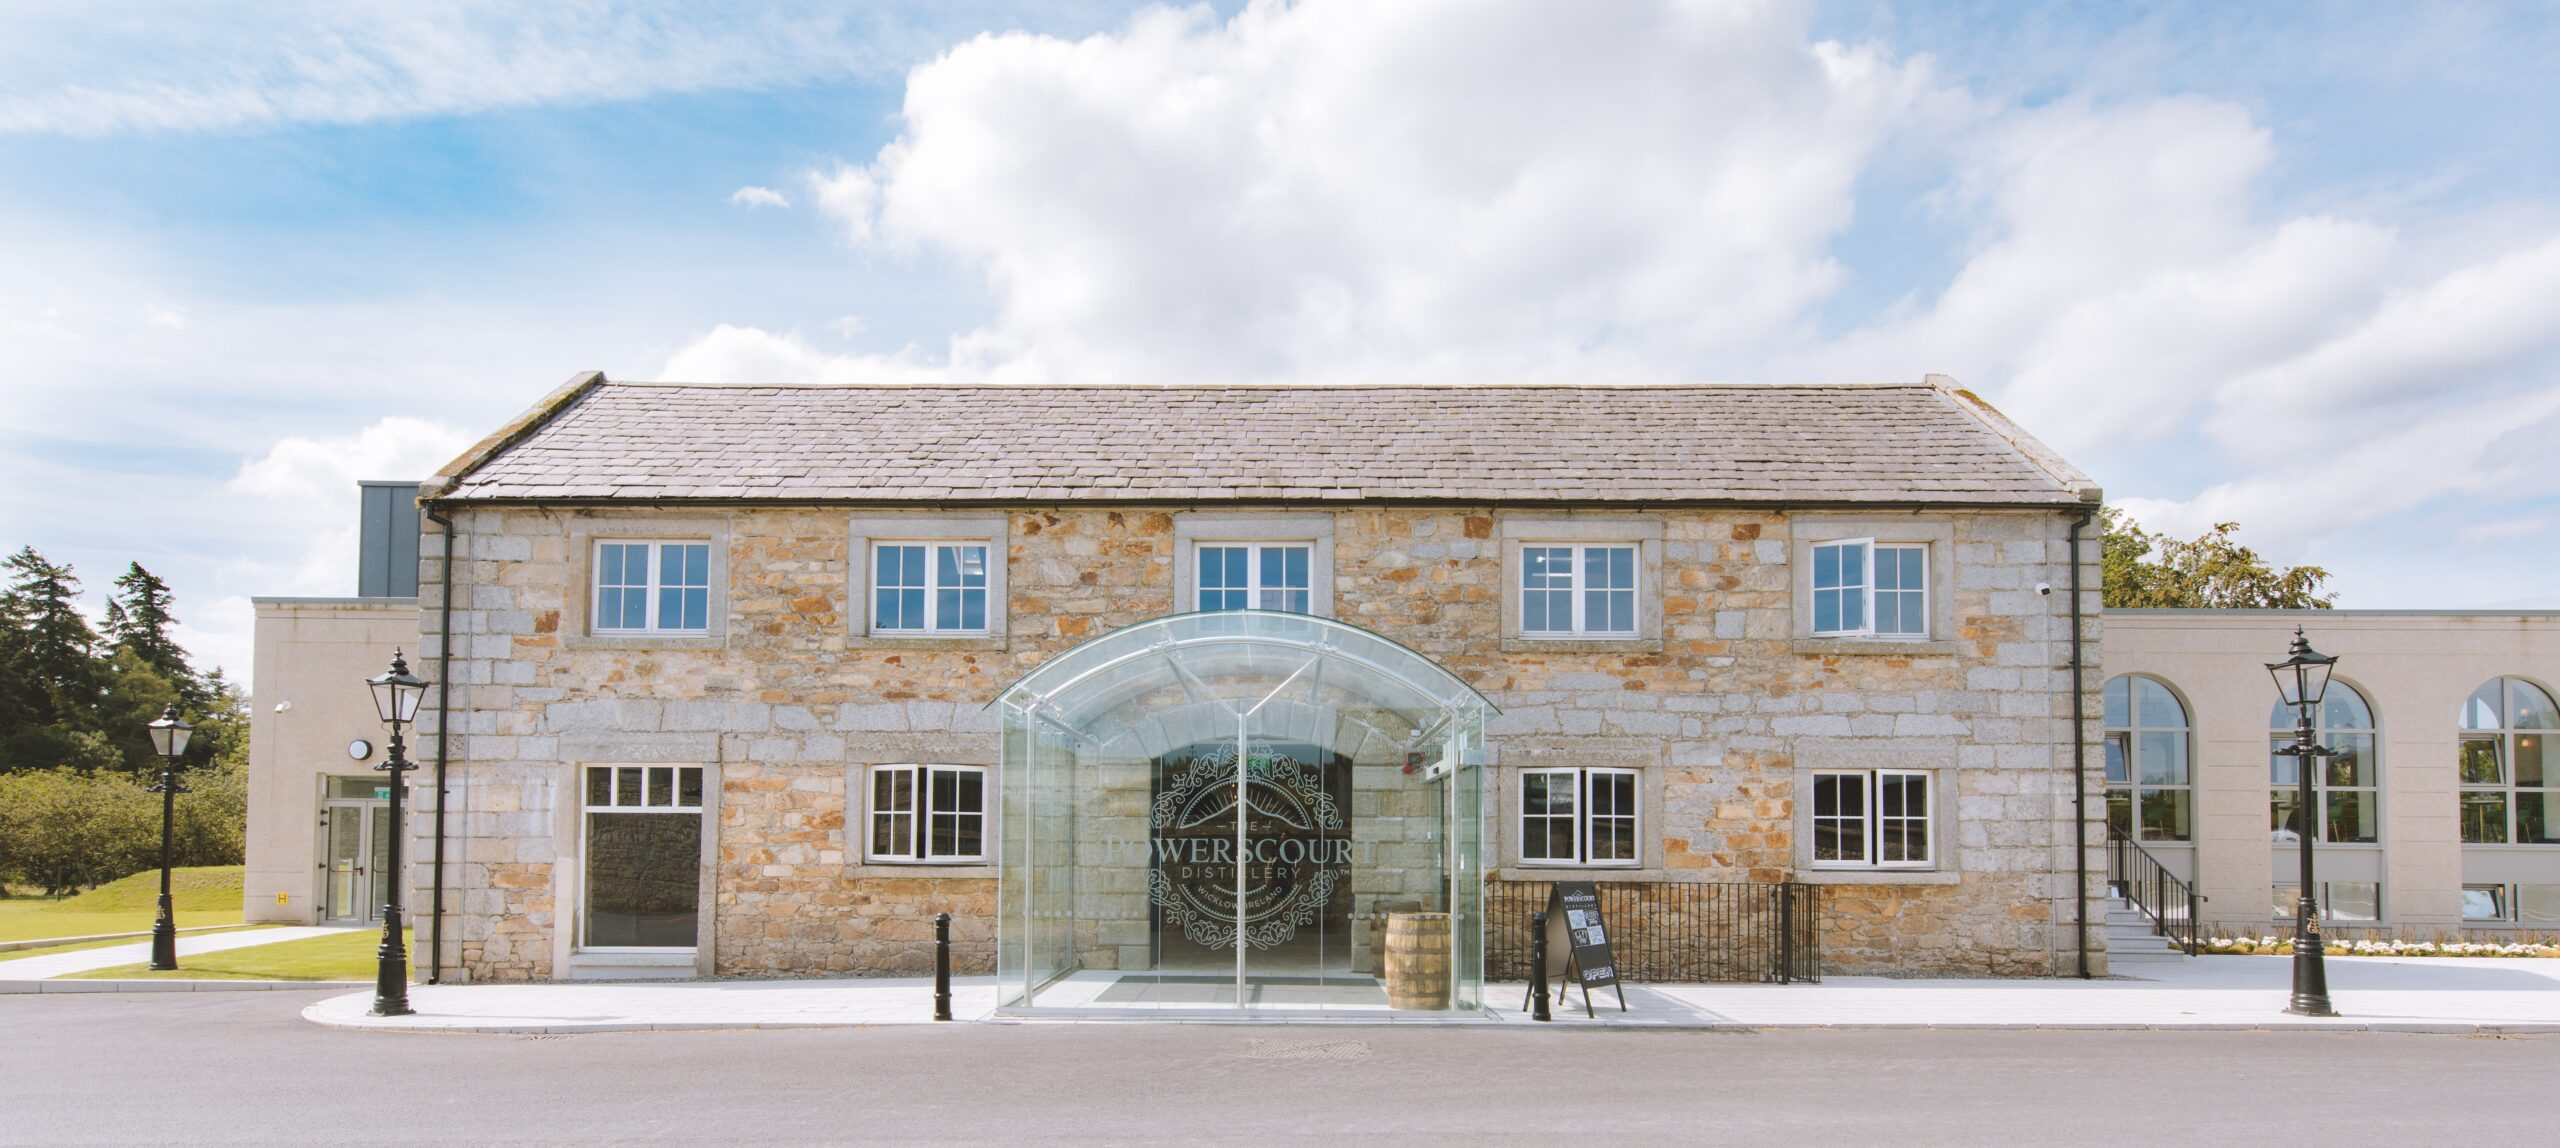 Powerscourt Distillery are delighted to announce the restart of Tours and Tastings